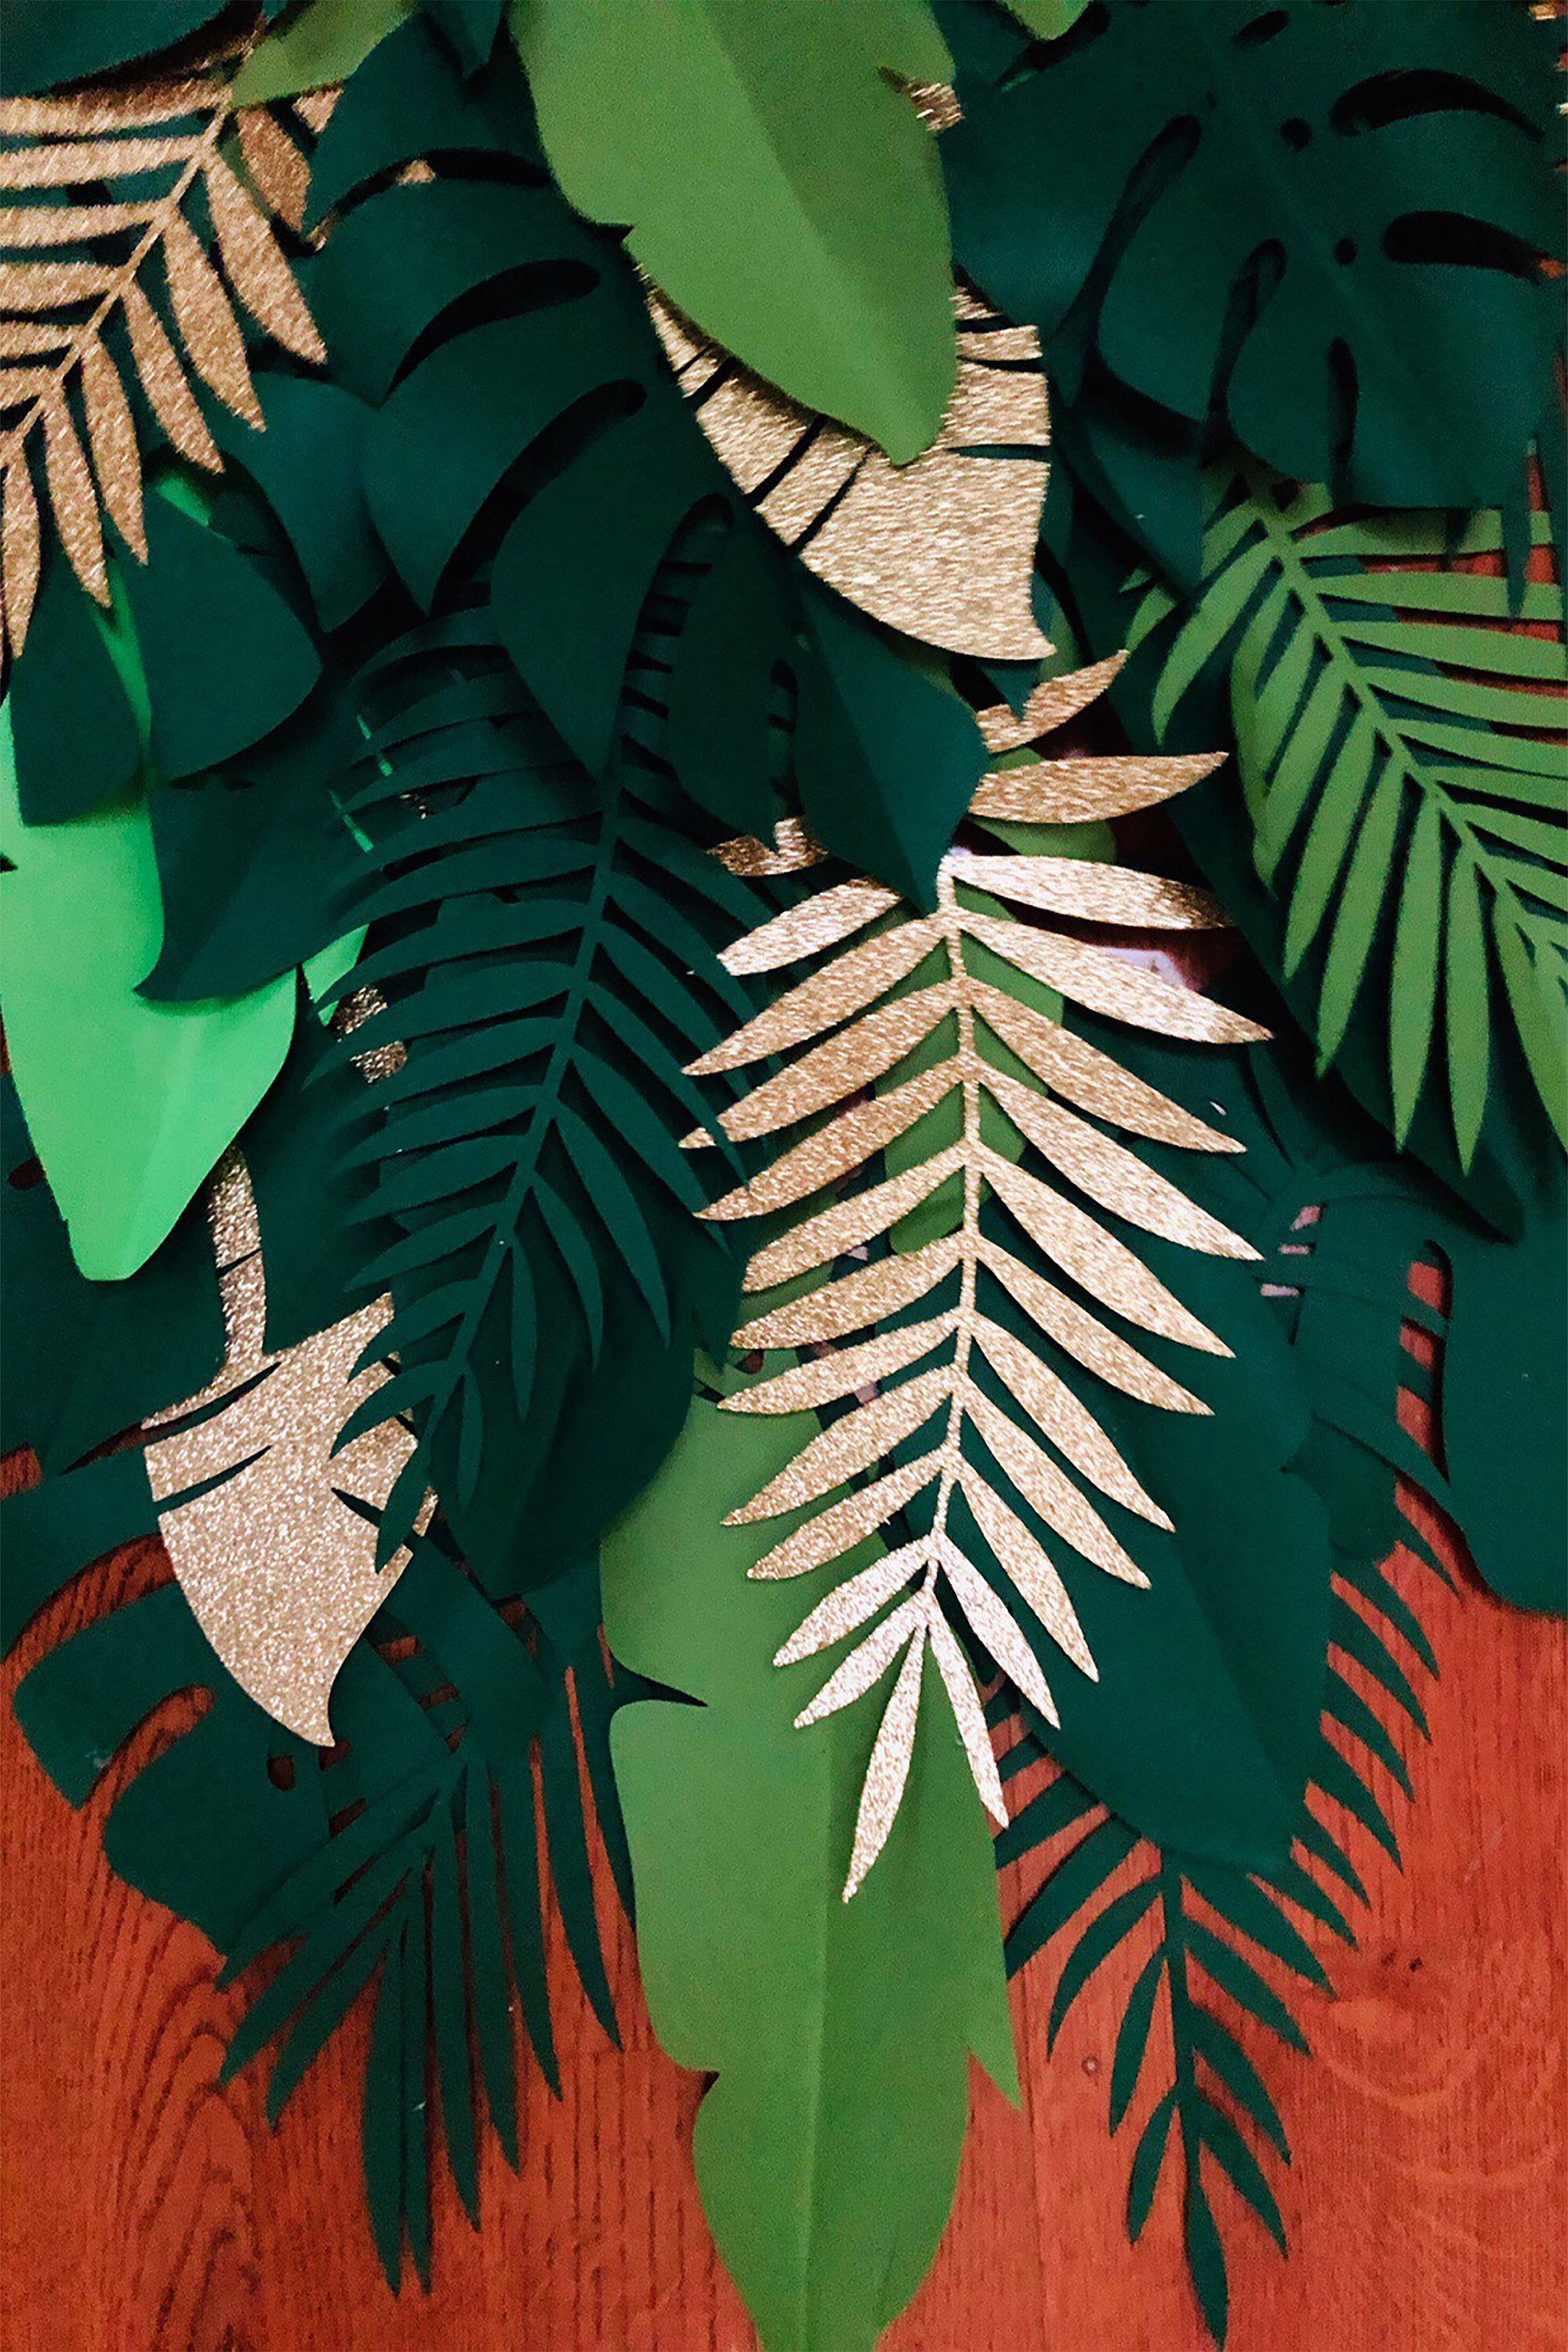 Large Lightweight Assorted Monstera, Ferns & Banana Leaves. Ideal for Jungle / Safari Theme Birthday Party, Tropical Theme Event. Set of 22 #decorateshop